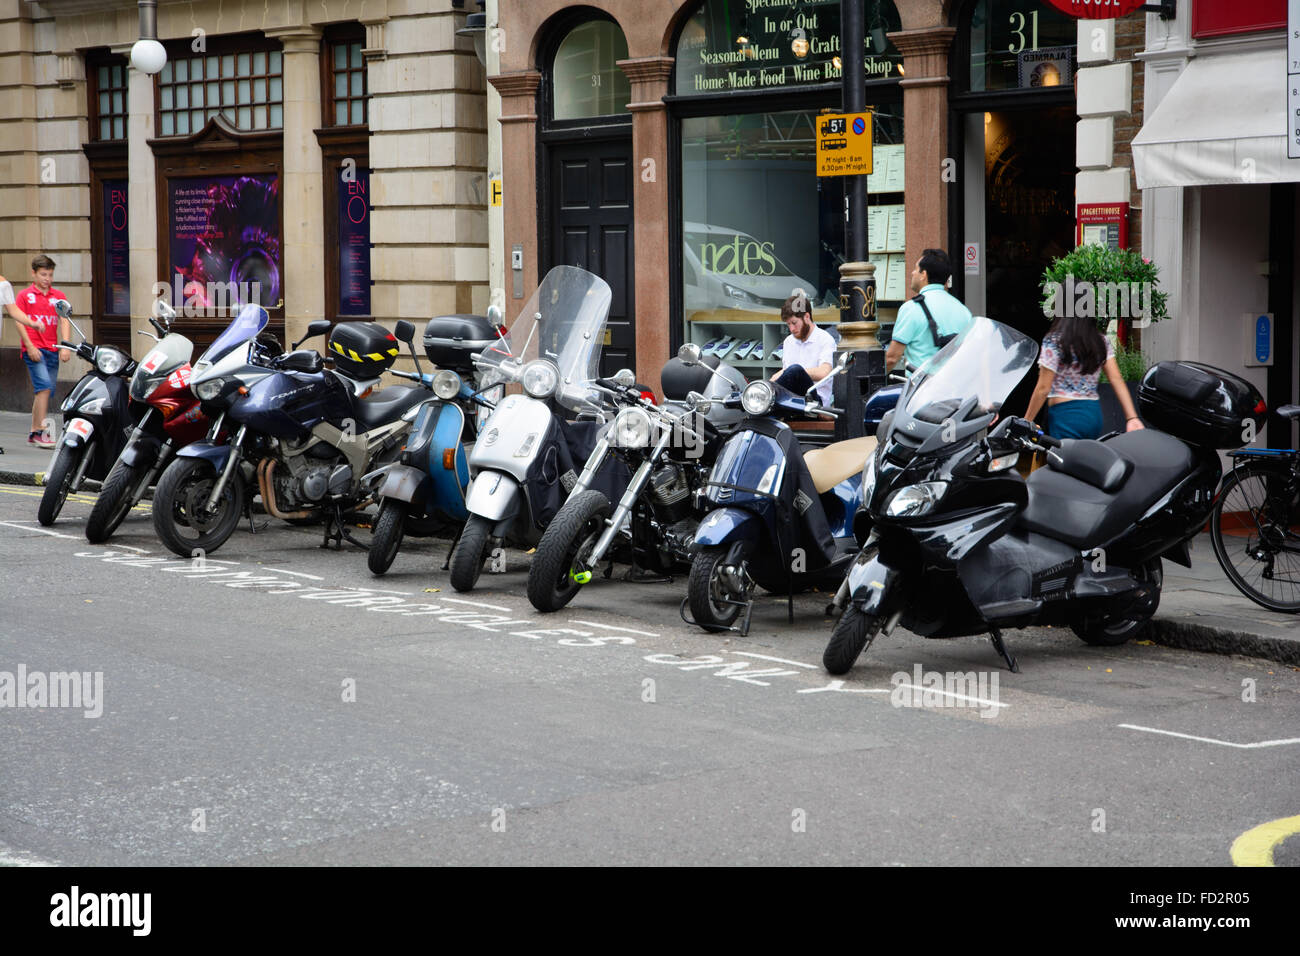 Parking place for solo motorcycles only, London - Stock Image